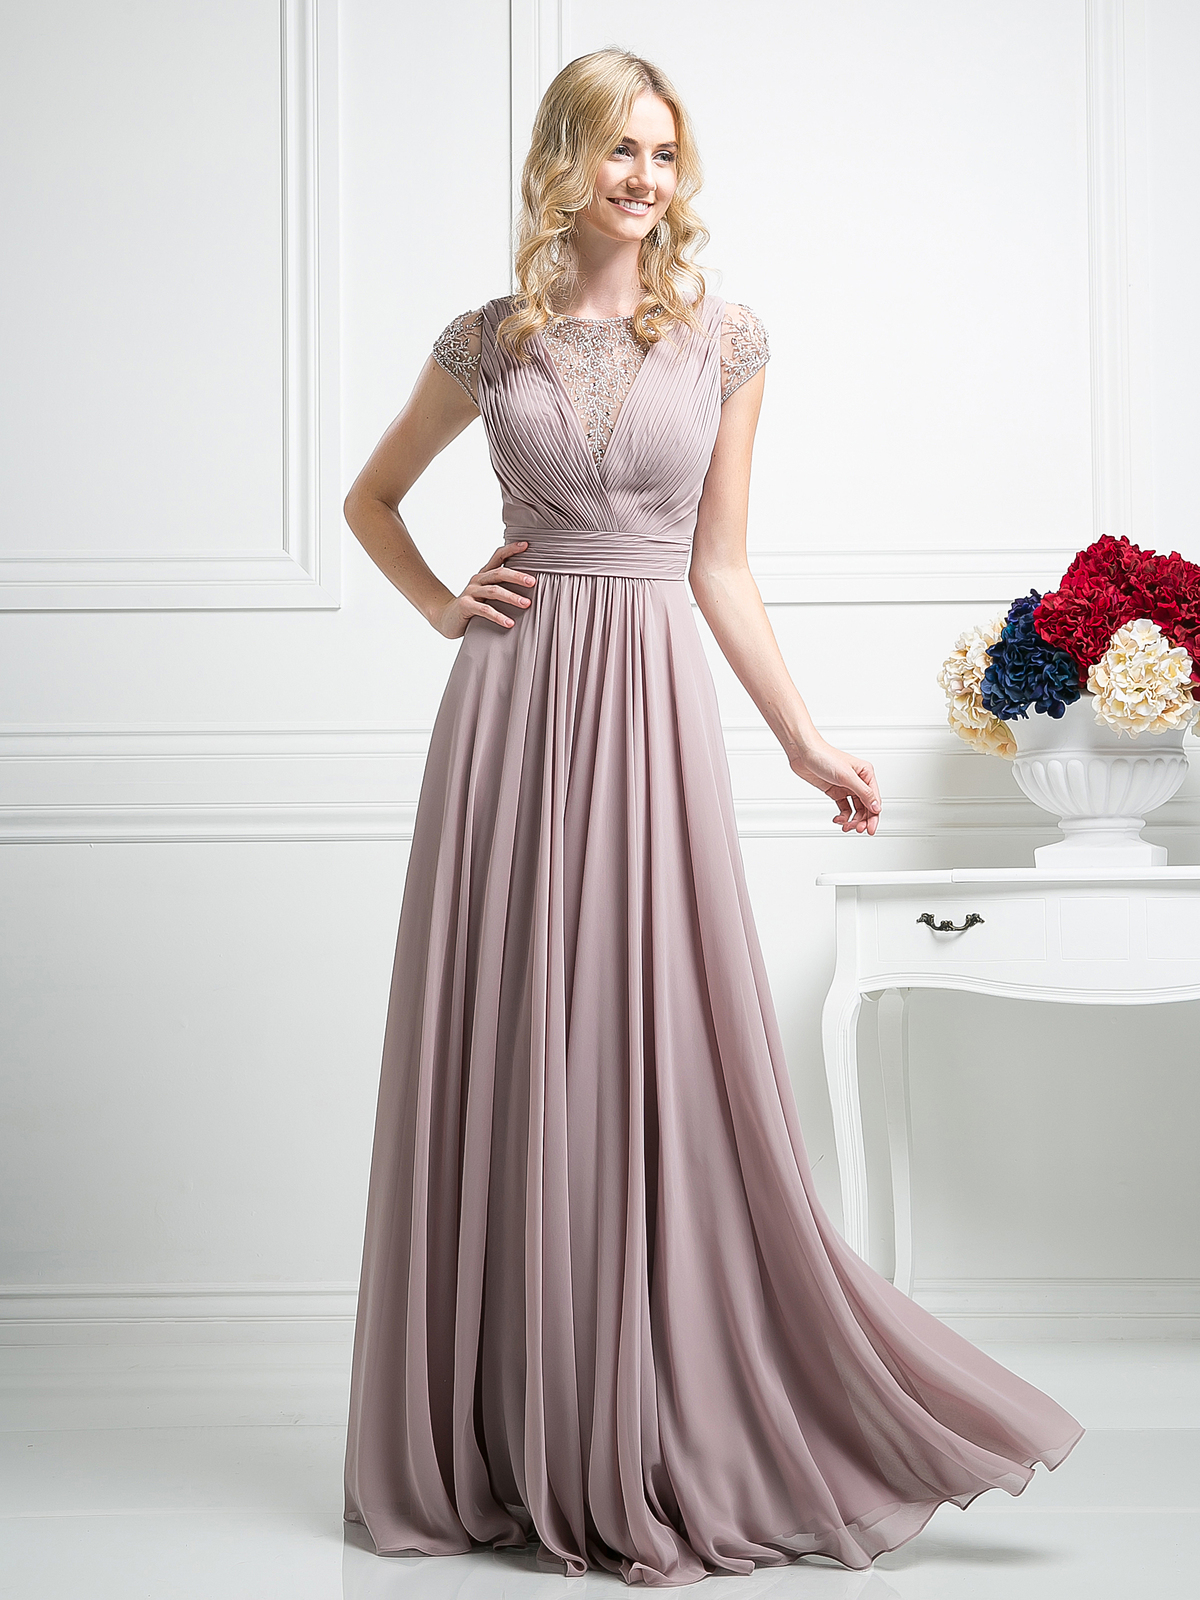 Pleated Bodice Evening Dress with Cap Sleeve | Sung Boutique L.A.